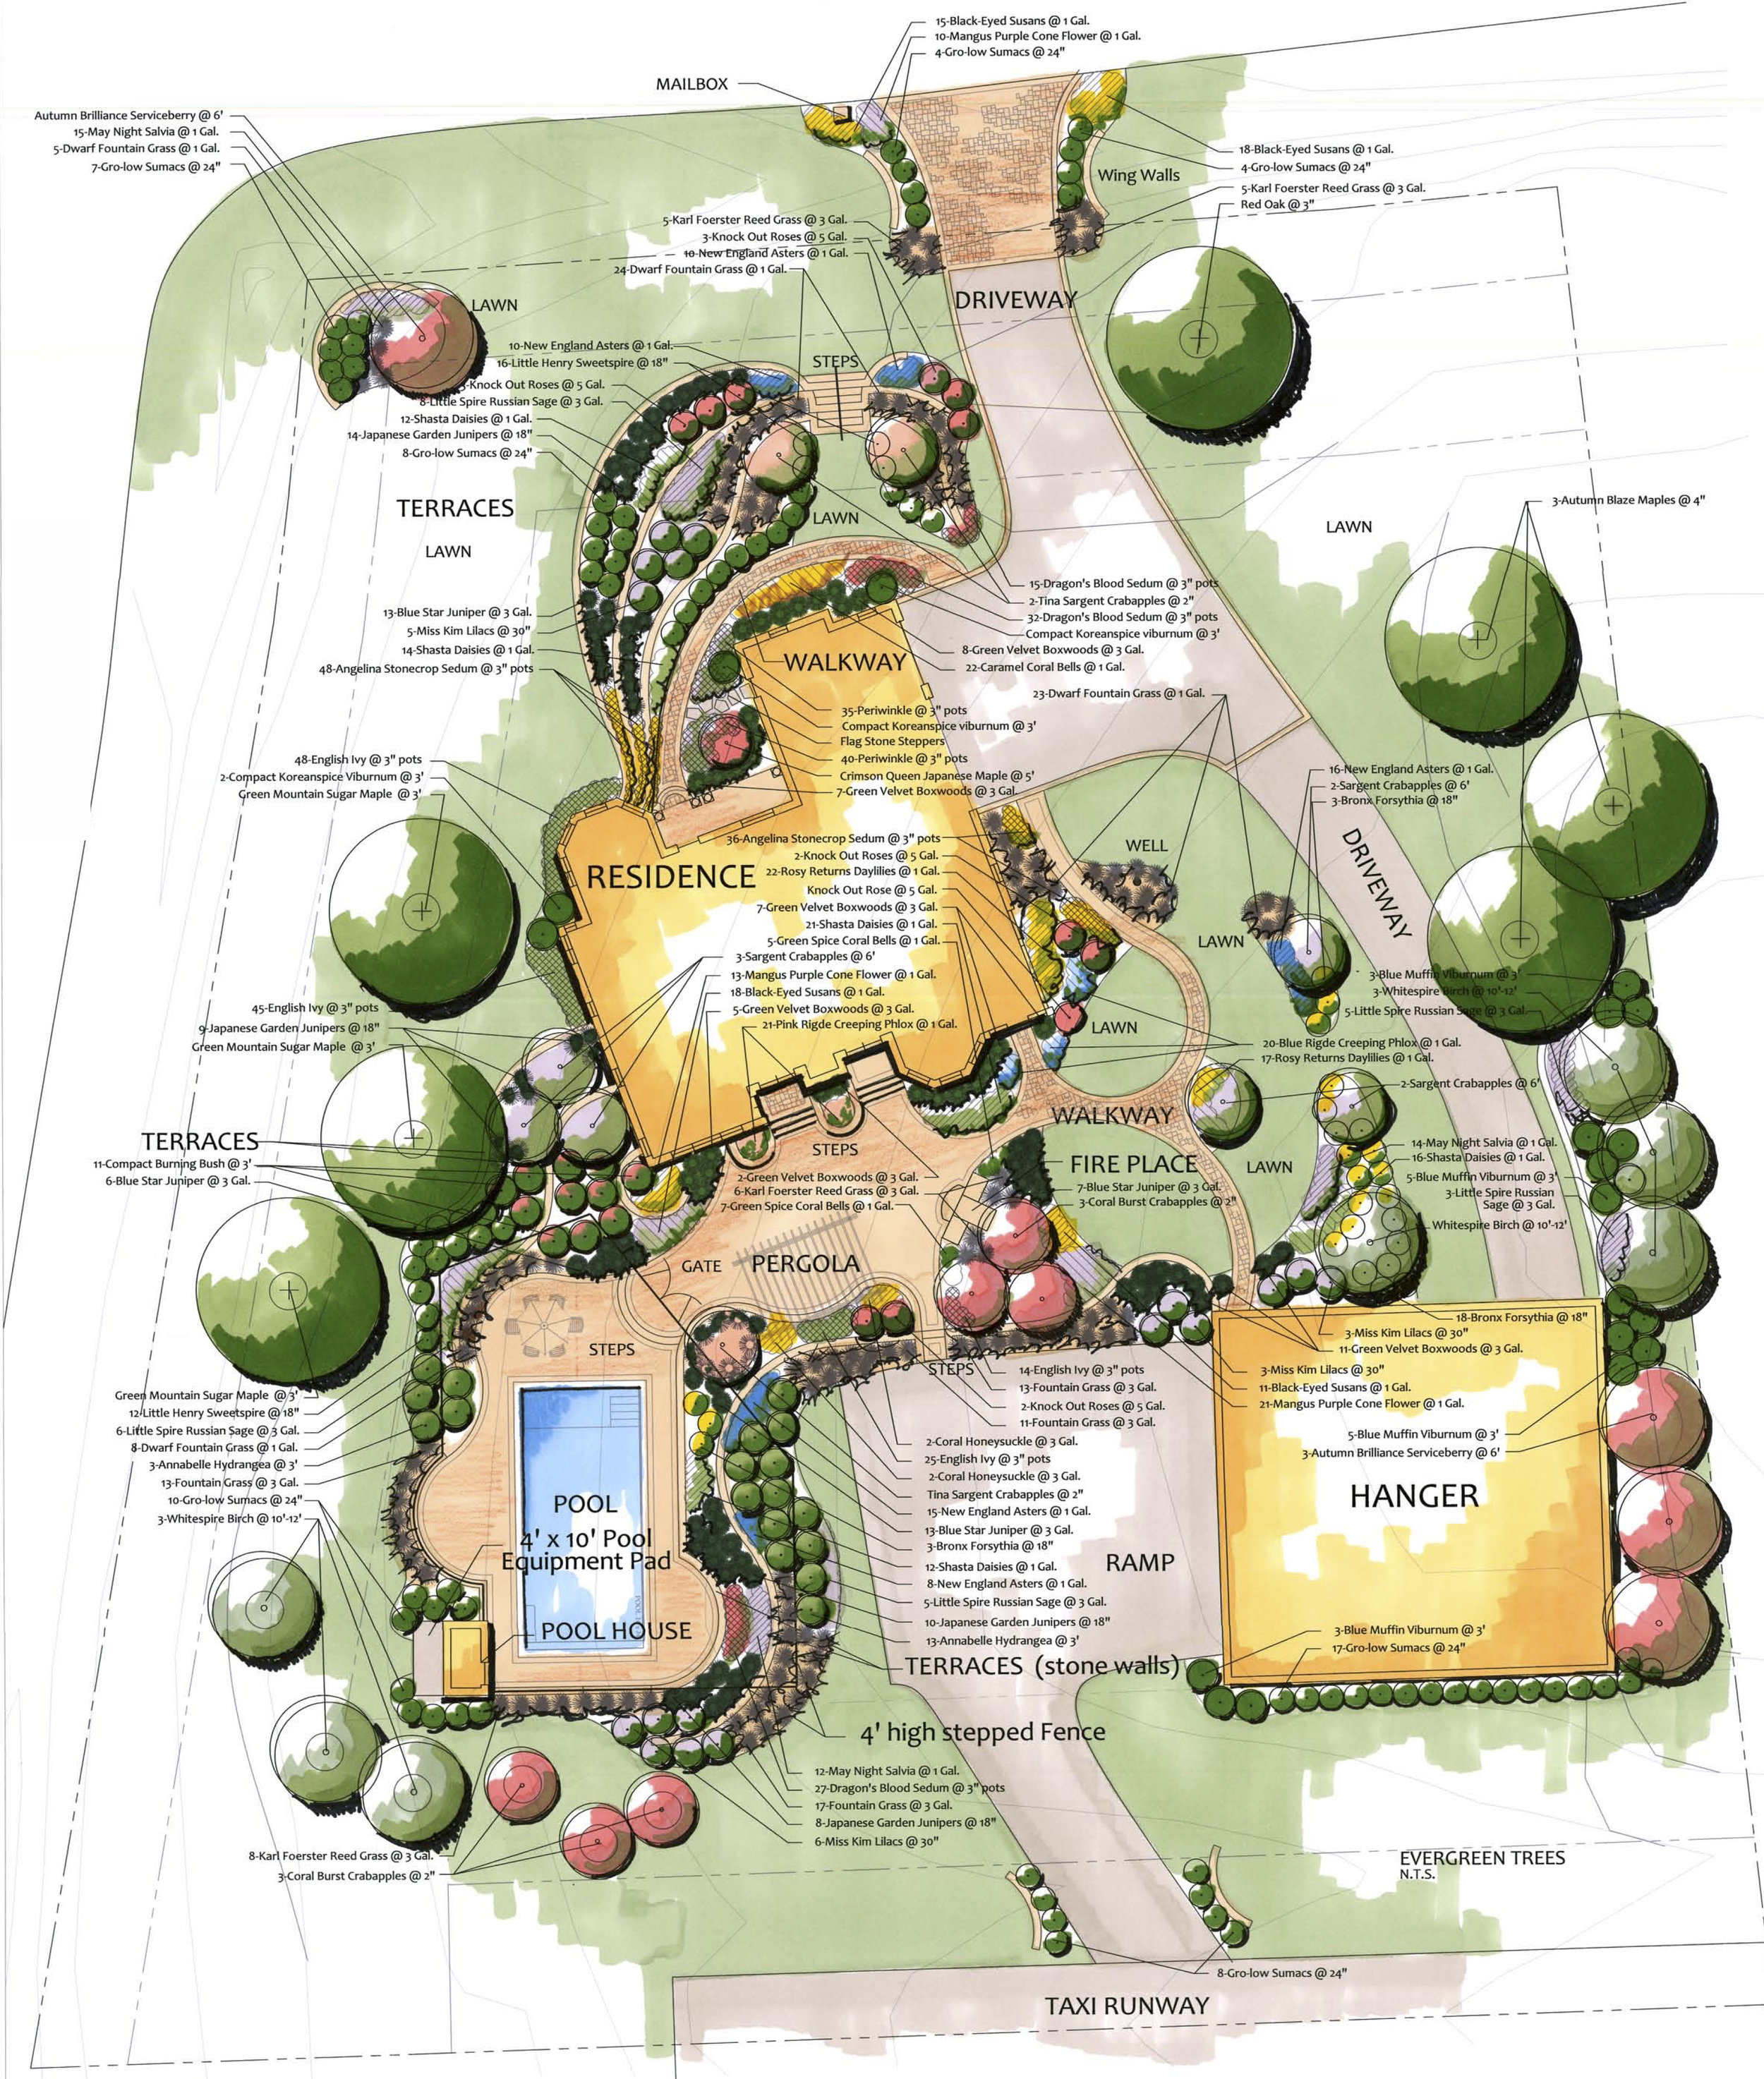 An example of a to-scale landscape plan